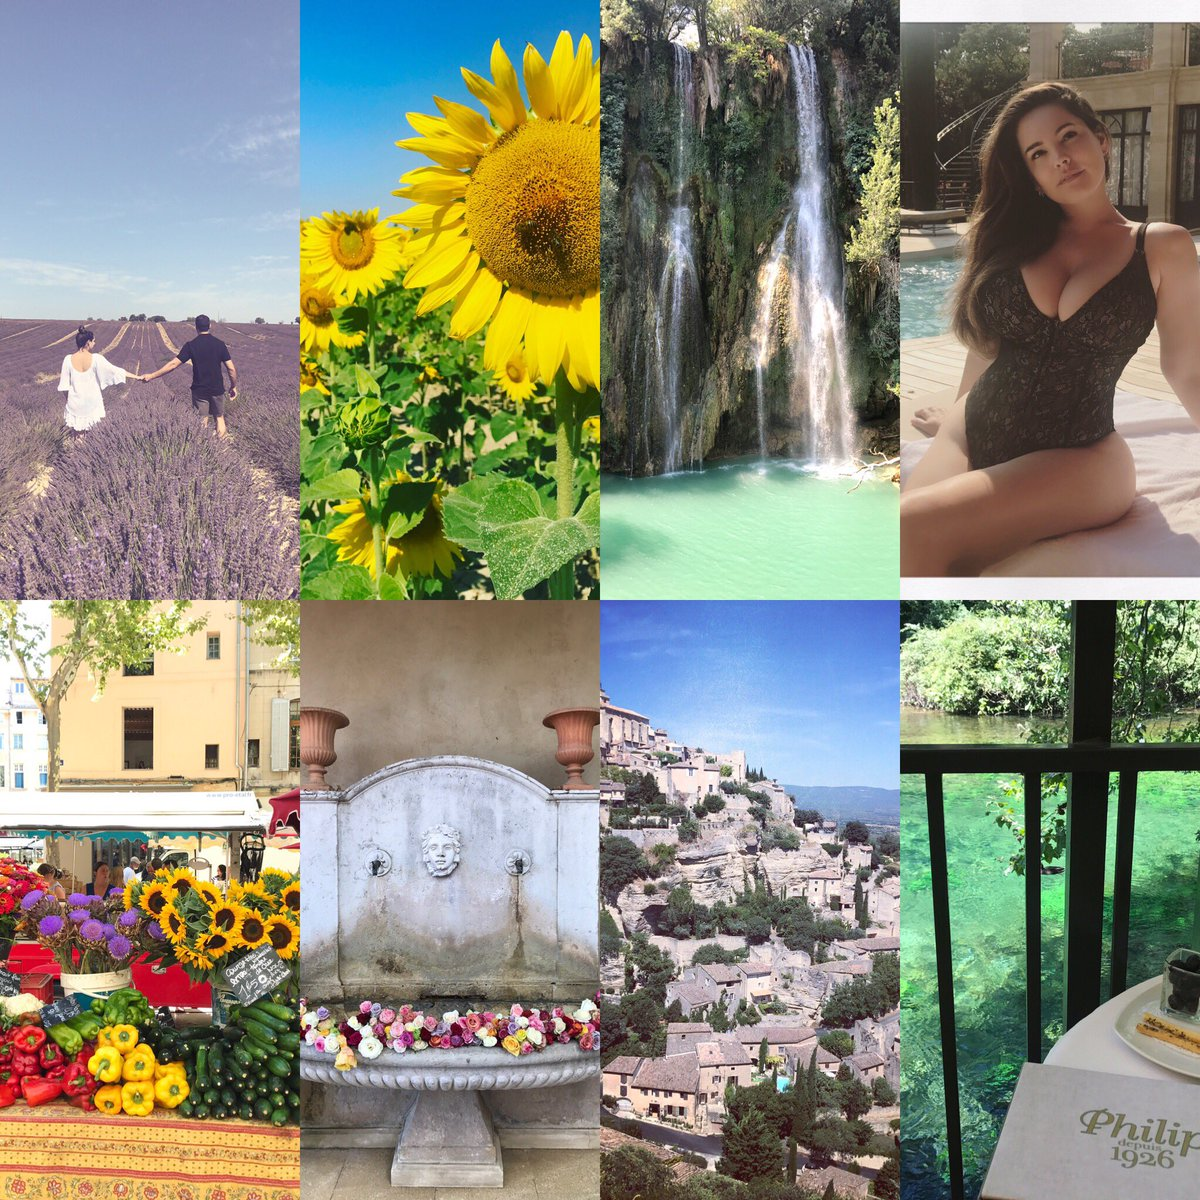 Ultimate Road Trip through the Provence France with my Best Friend @JeremParisi ????❤️???????????????????????? https://t.co/JkcaXl9mMJ